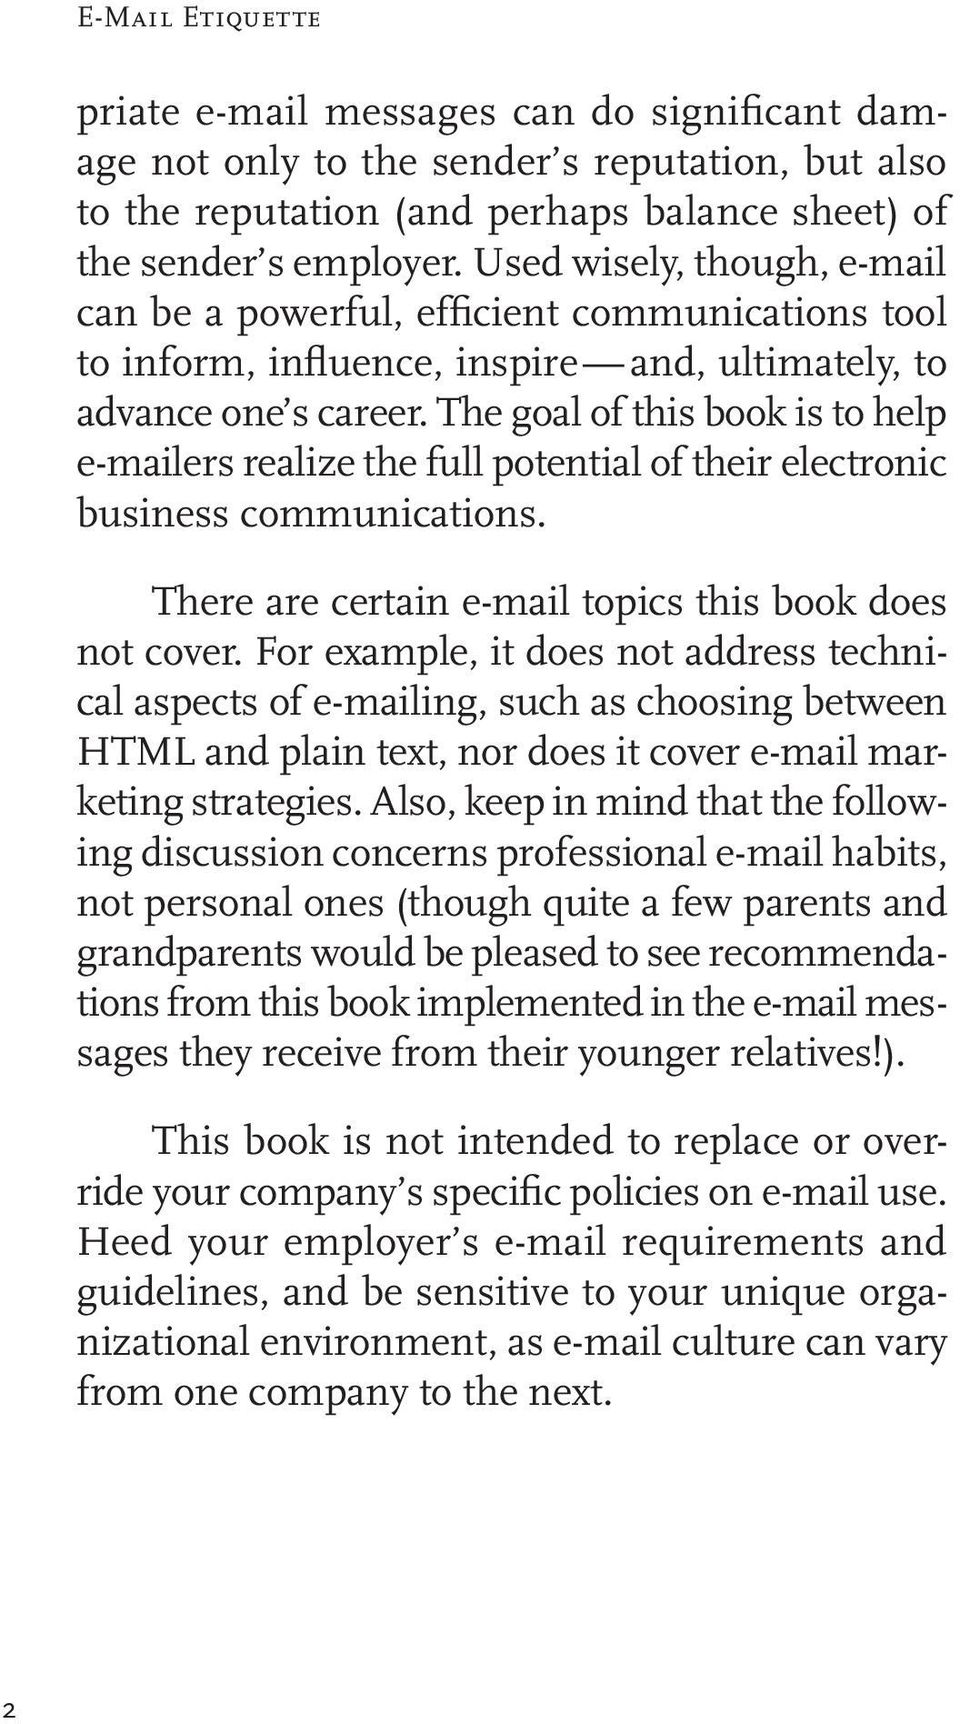 The goal of this book is to help e-mailers realize the full potential of their electronic business communications. There are certain e-mail topics this book does not cover.